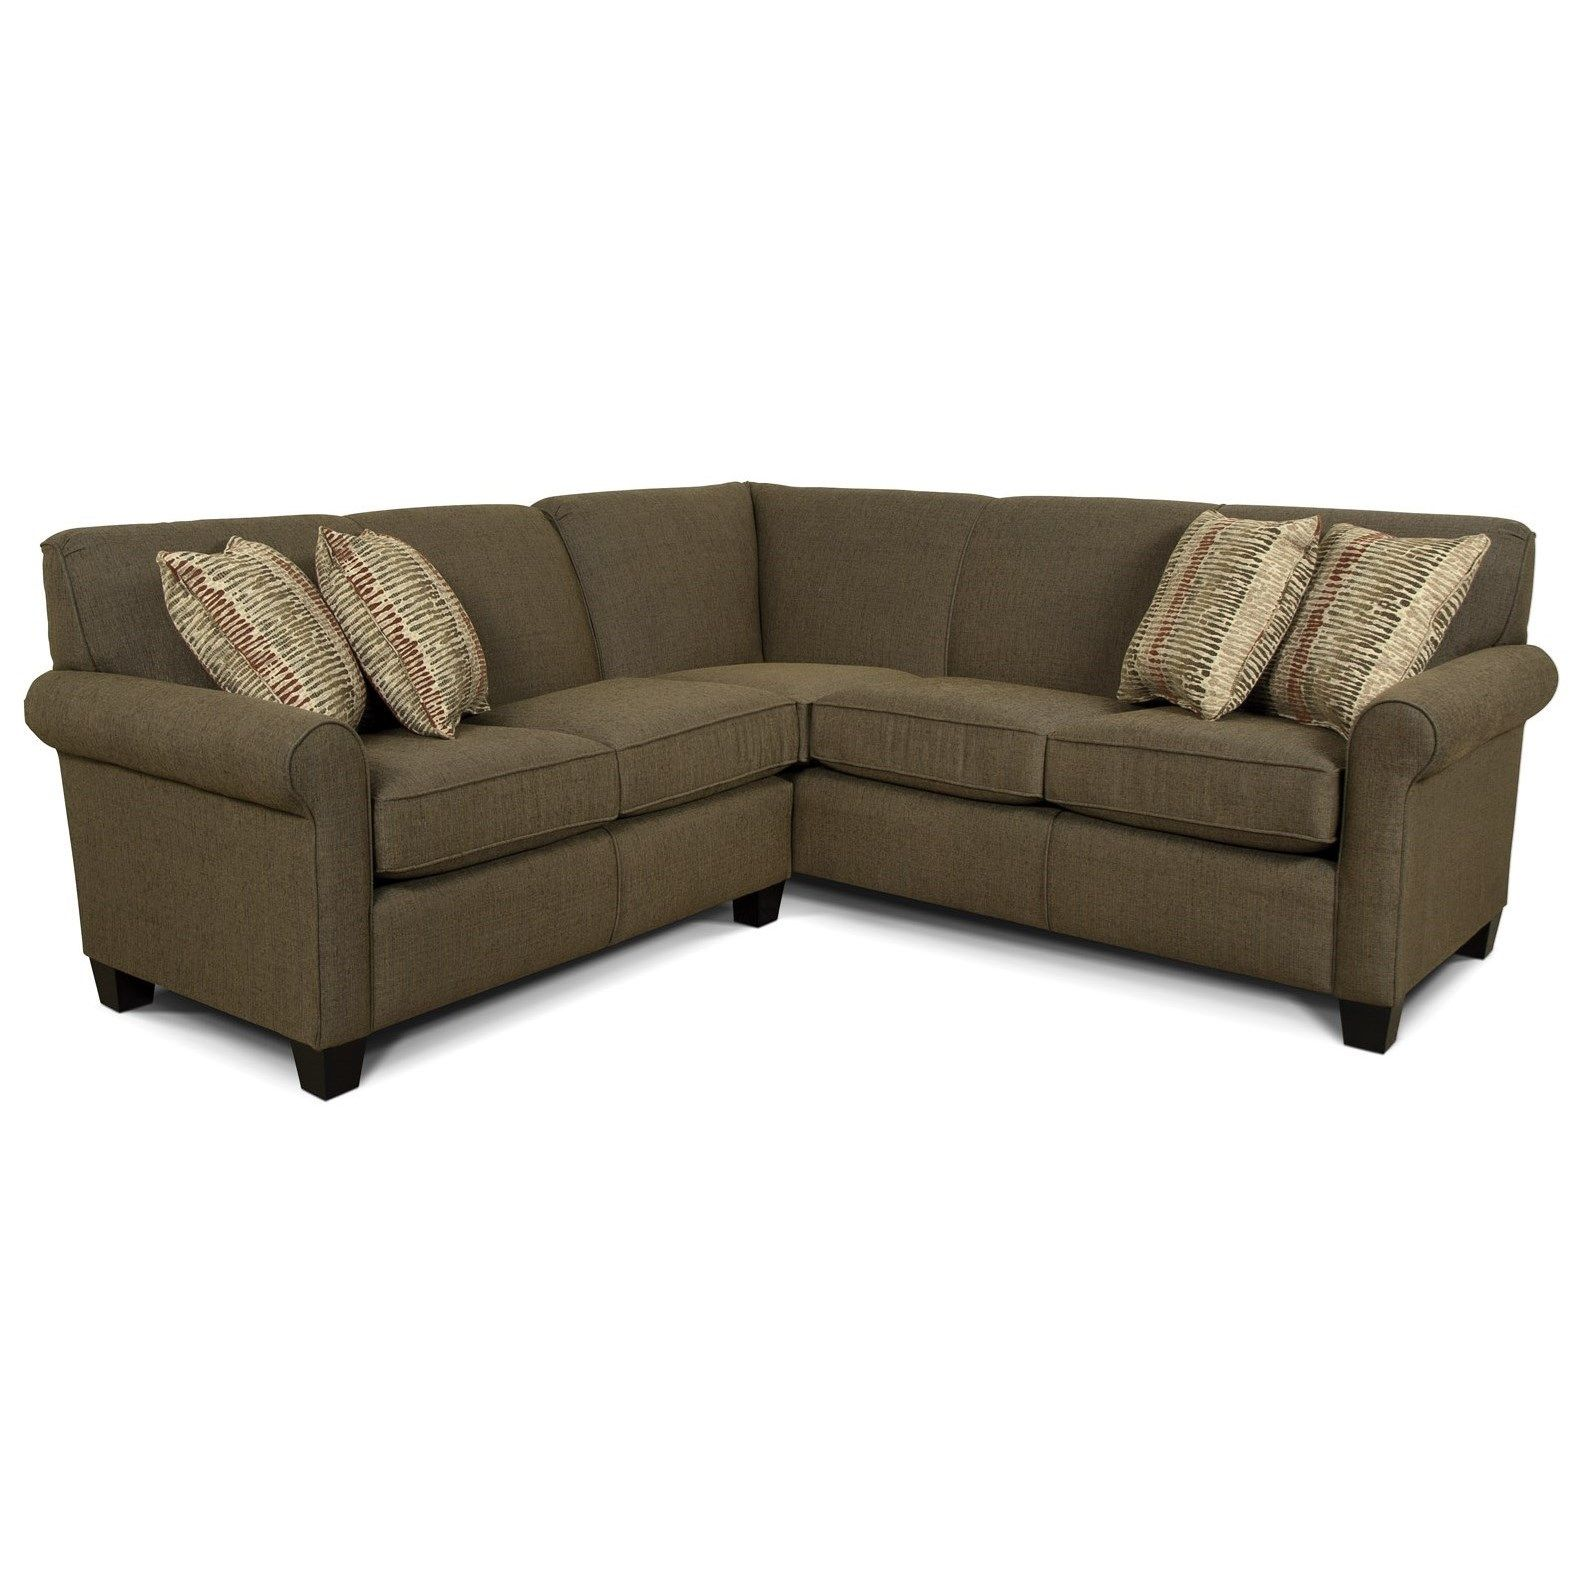 Angie Sectional Sofa By England Mattress Furniture Corner